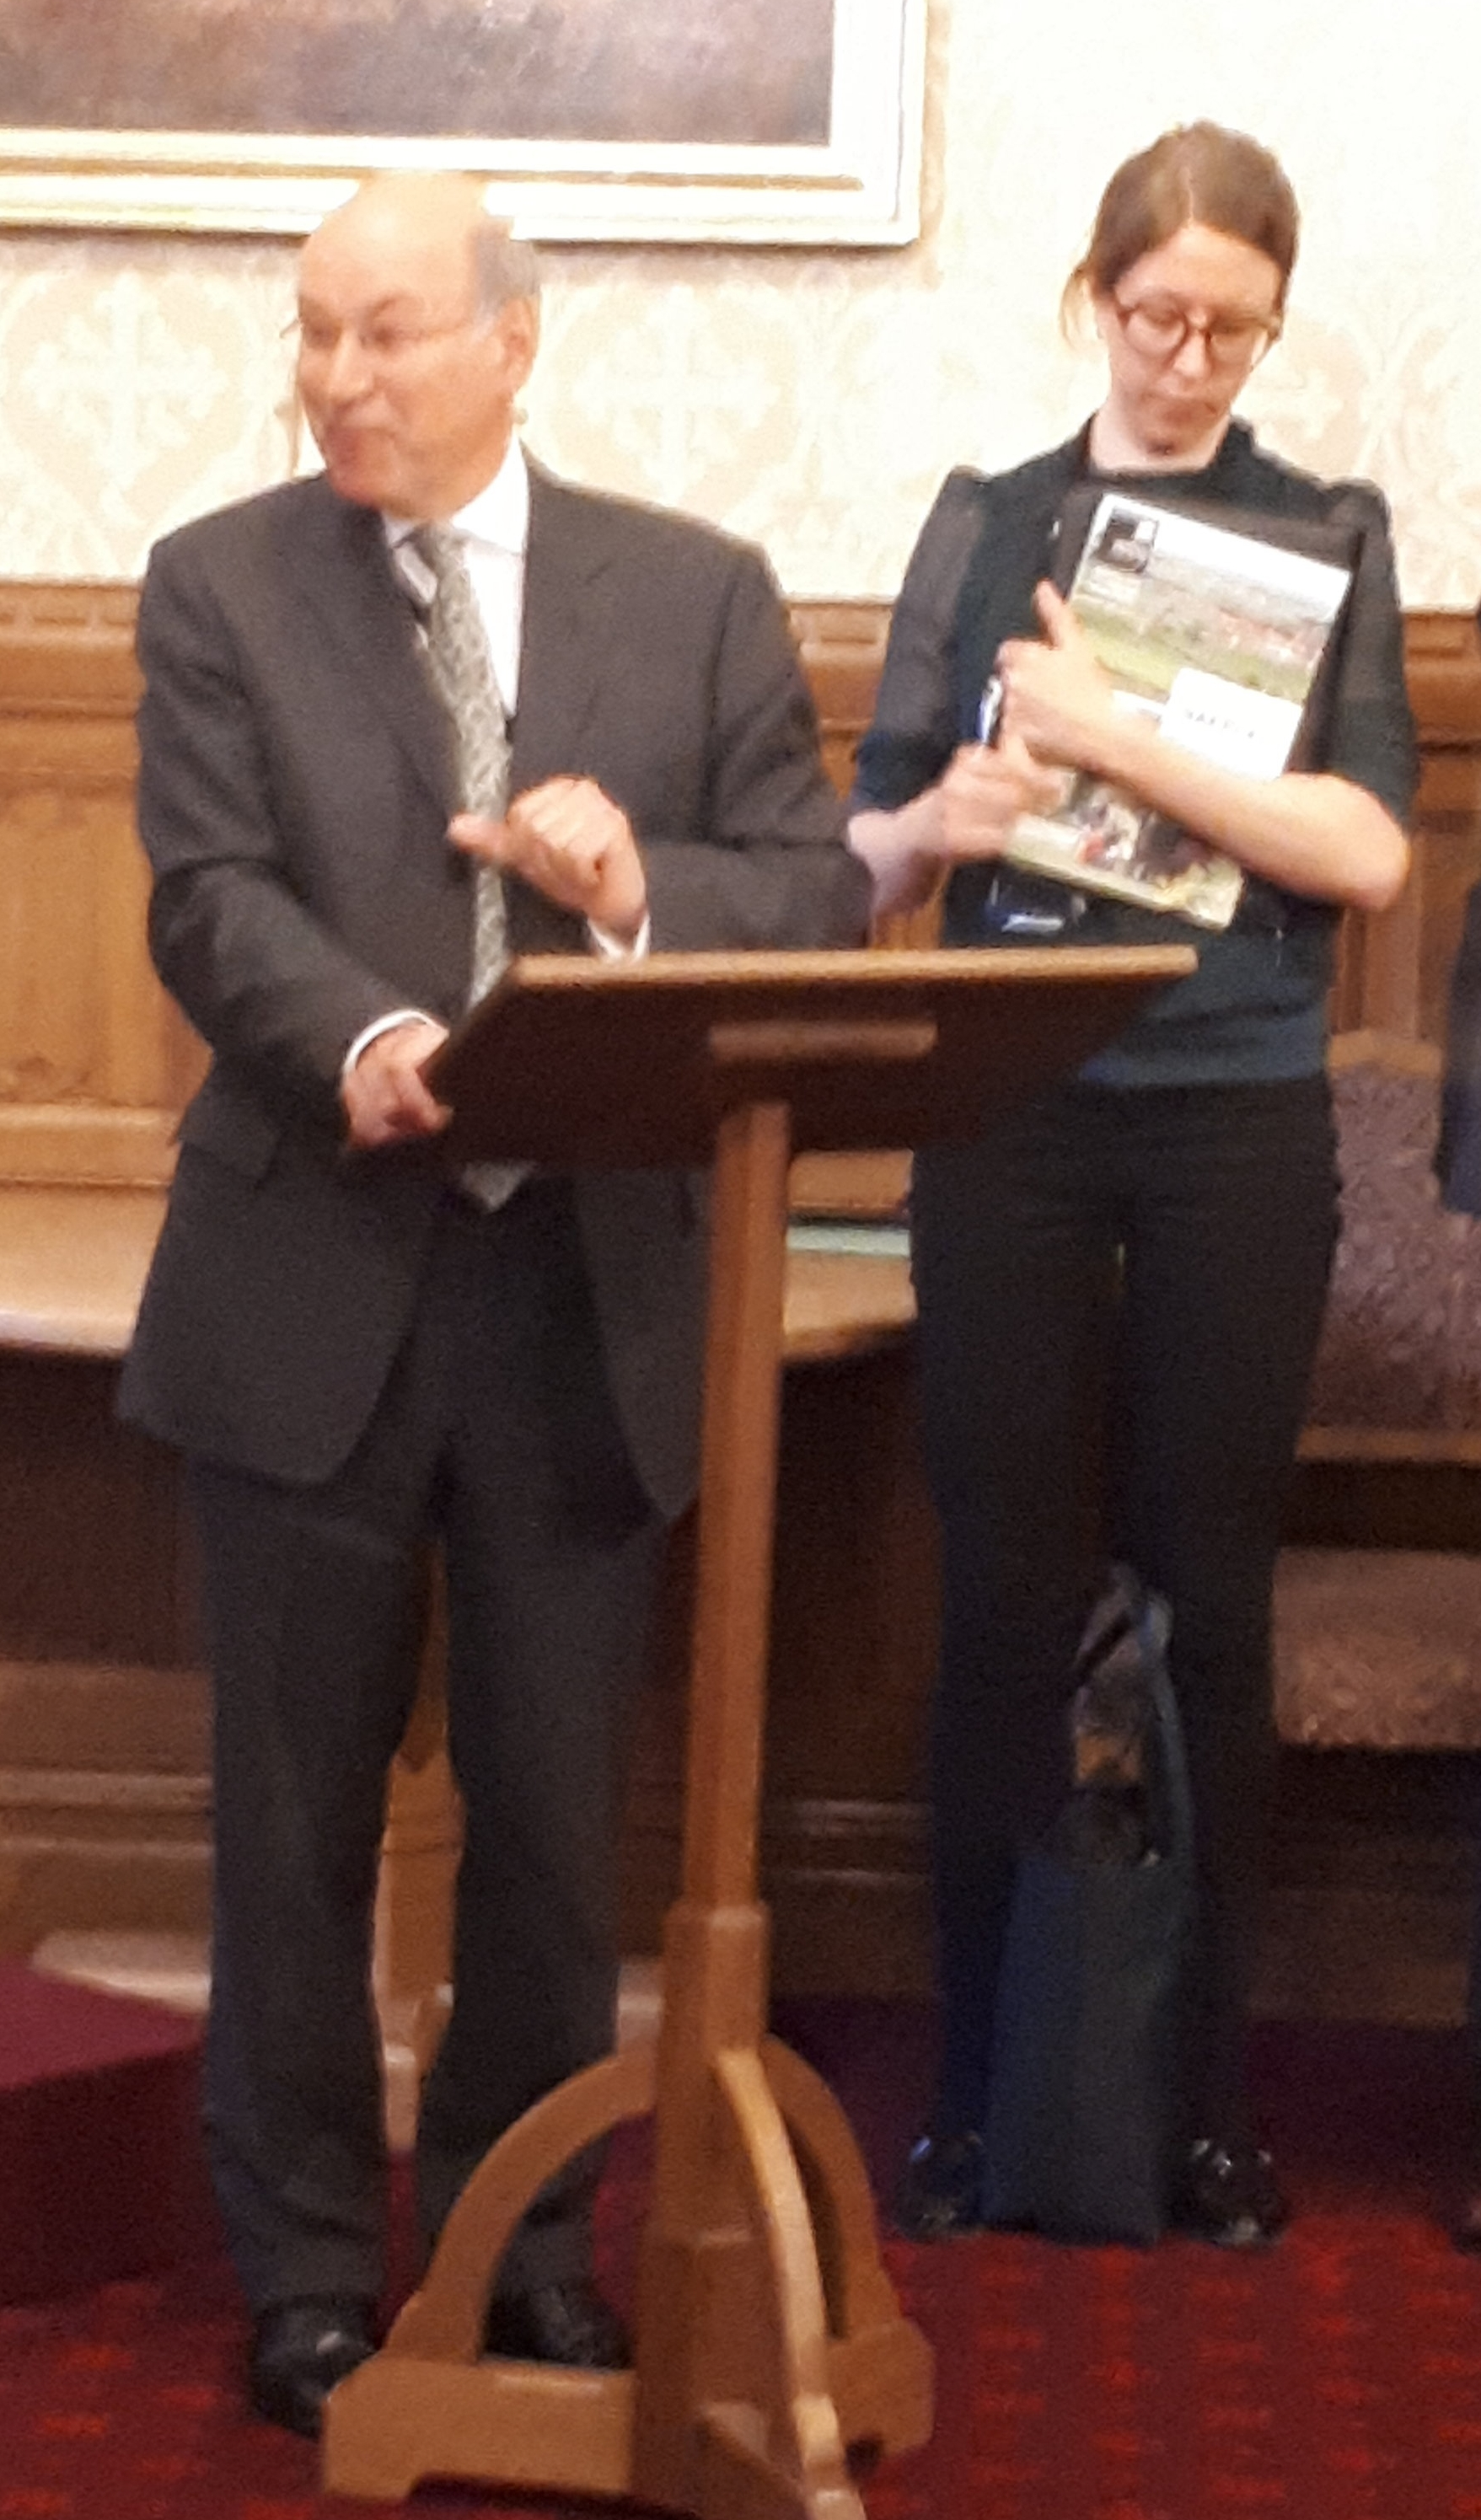 Lord Gardiner presenting HAPPI 4 at the House of Lords